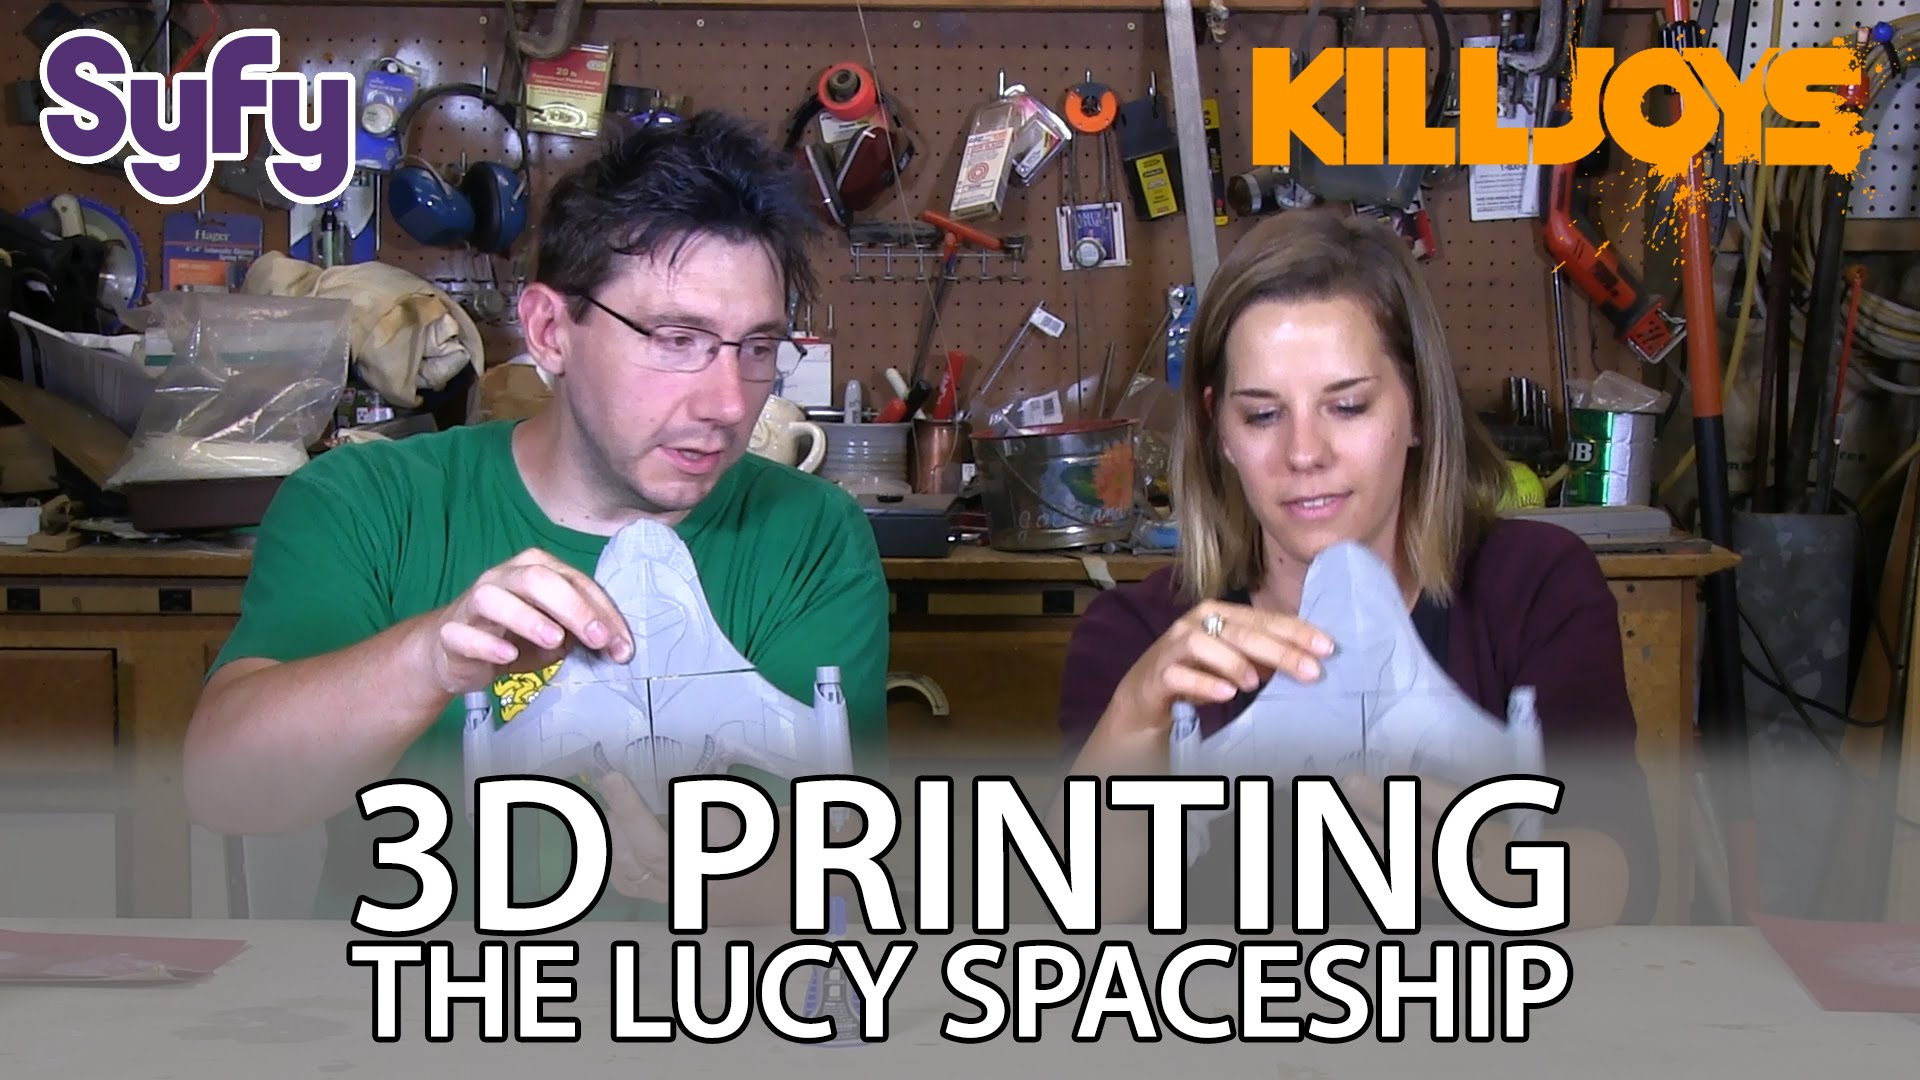 3D Printing: Lucy Spaceship from SyFy Killjoys